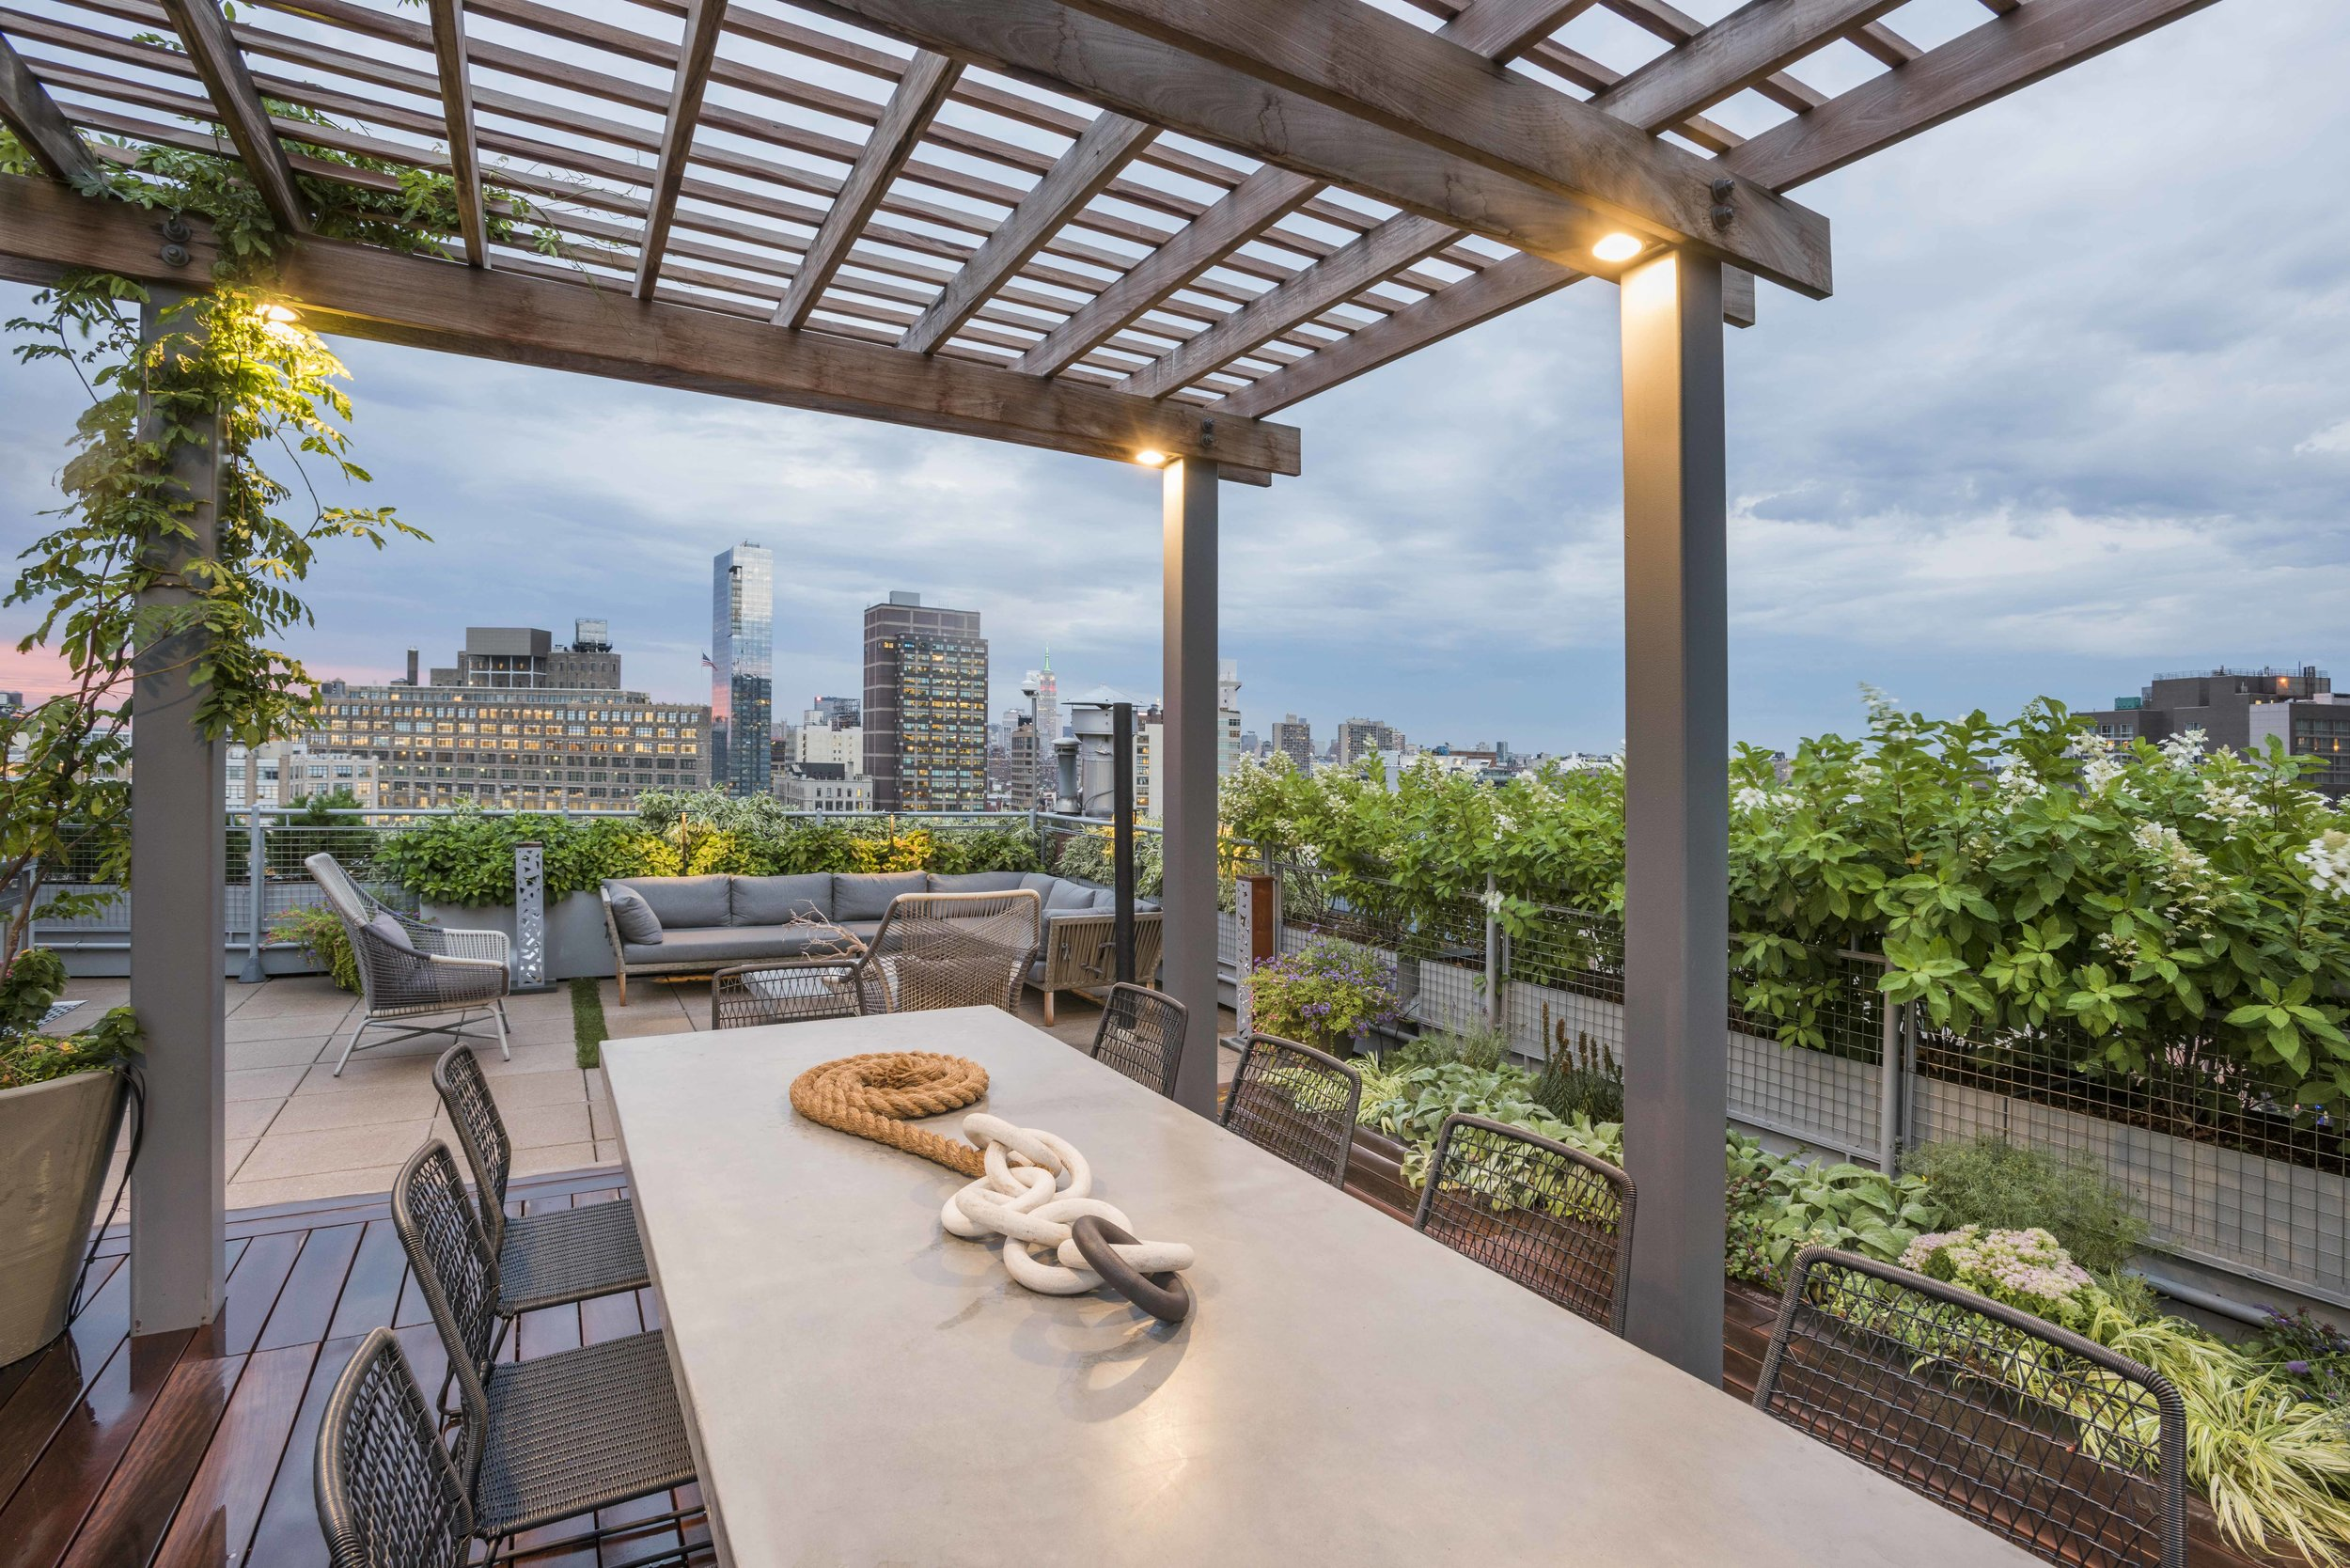 Tribeca Common Roof Table.jpg